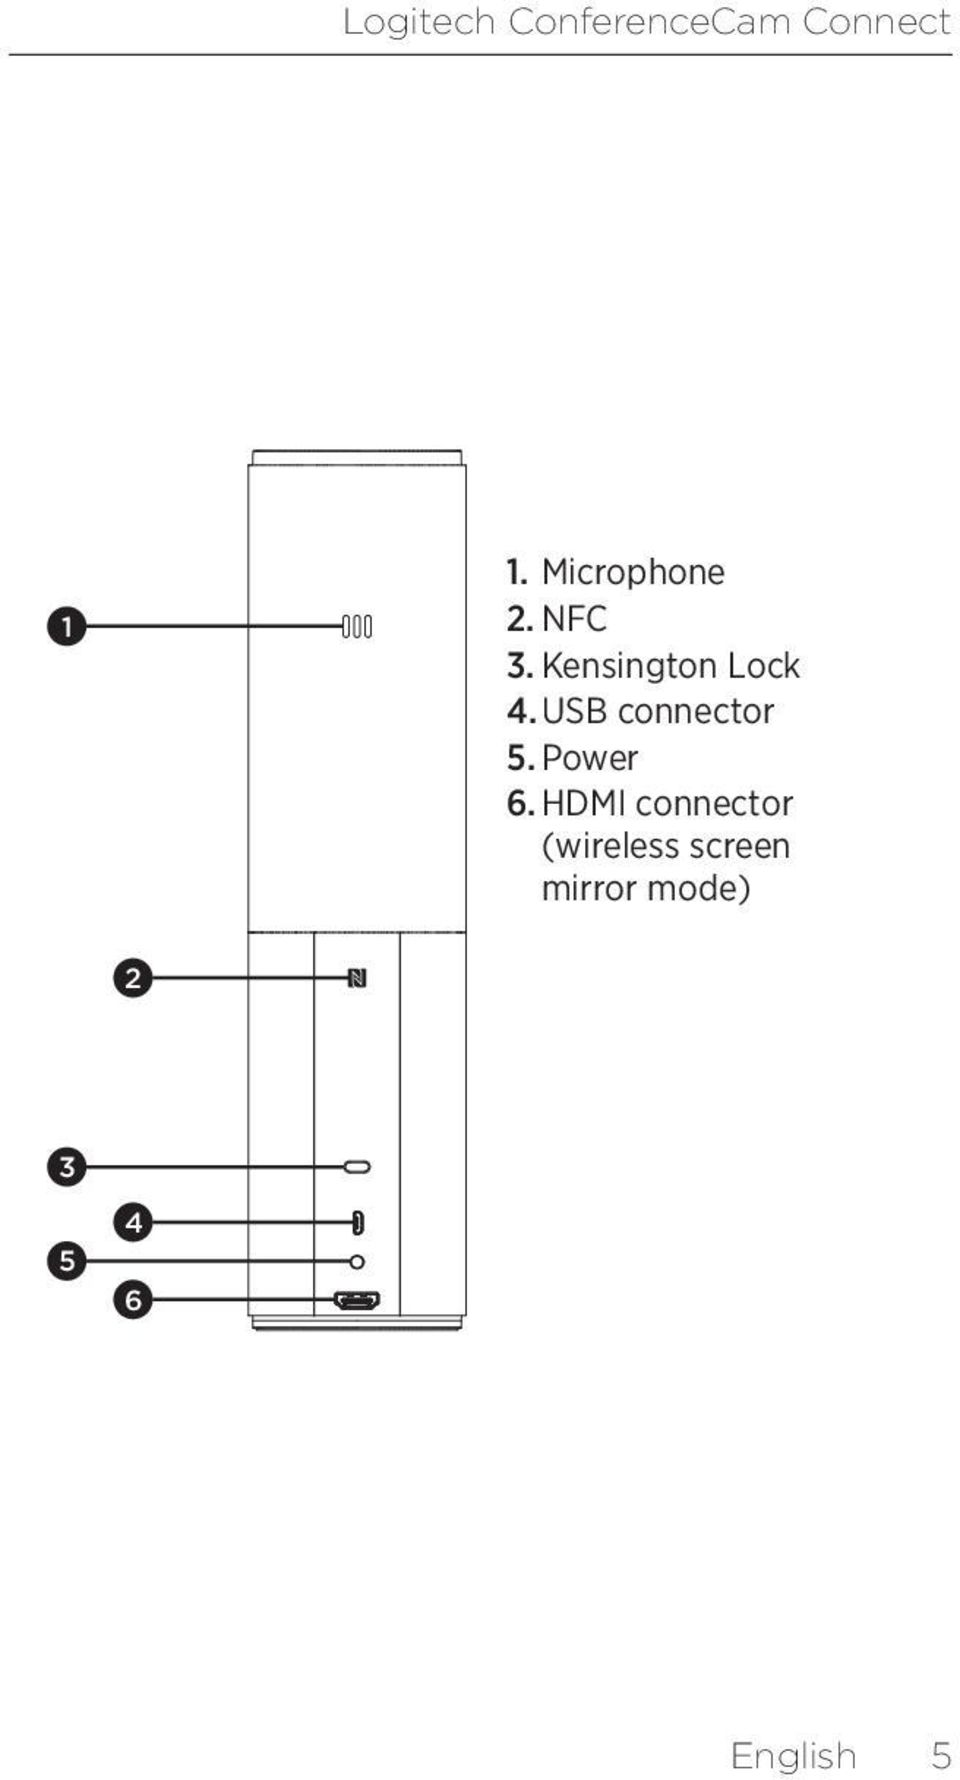 USB connector 5. Power 6.